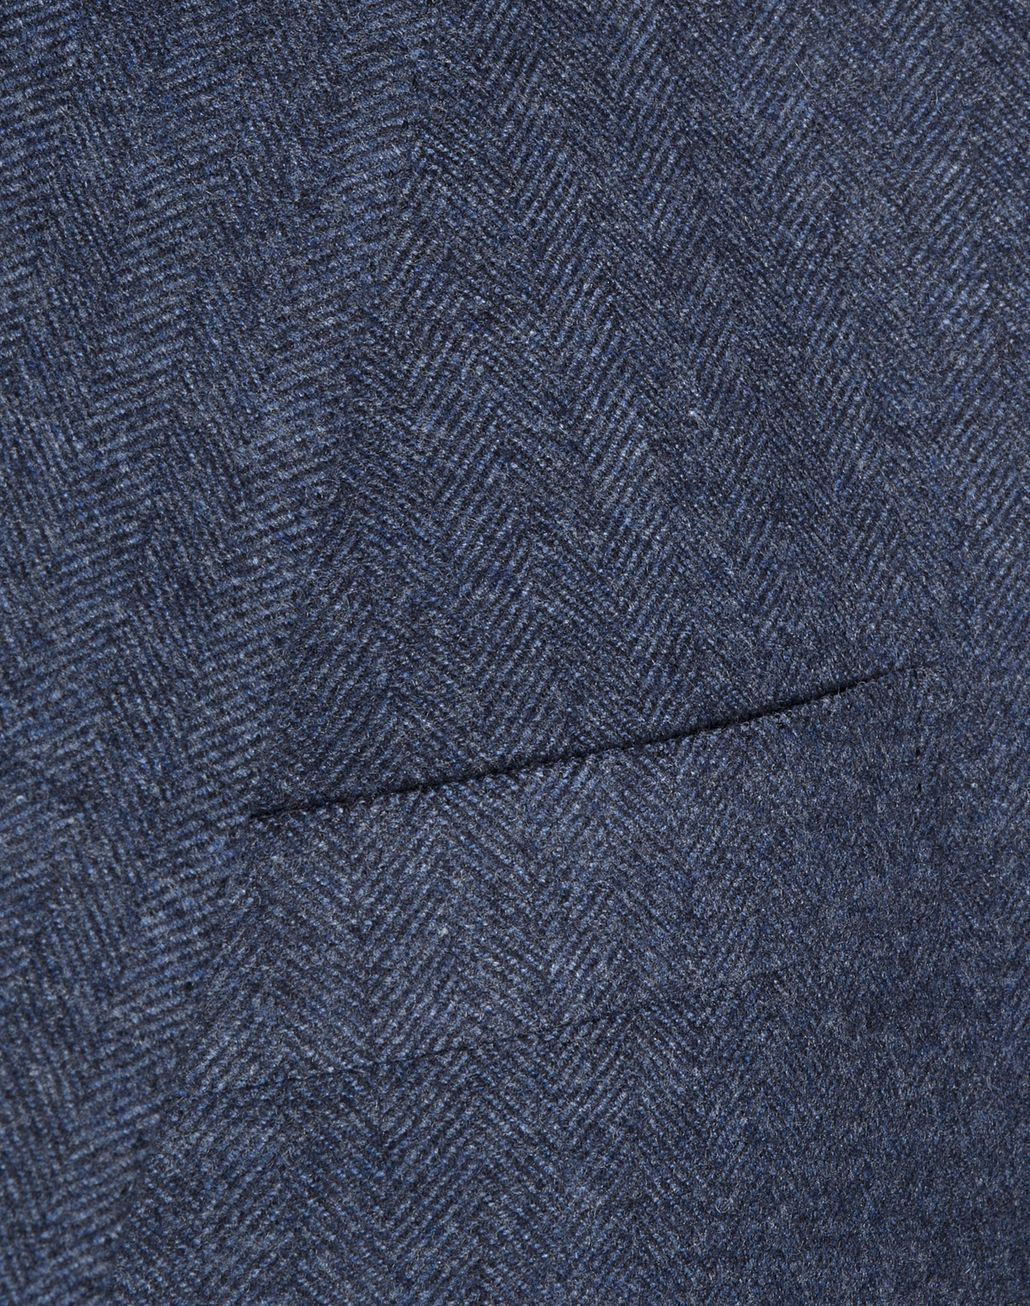 BRIONI Denim Blue Herringbone Plume Jacket Jackets Man d